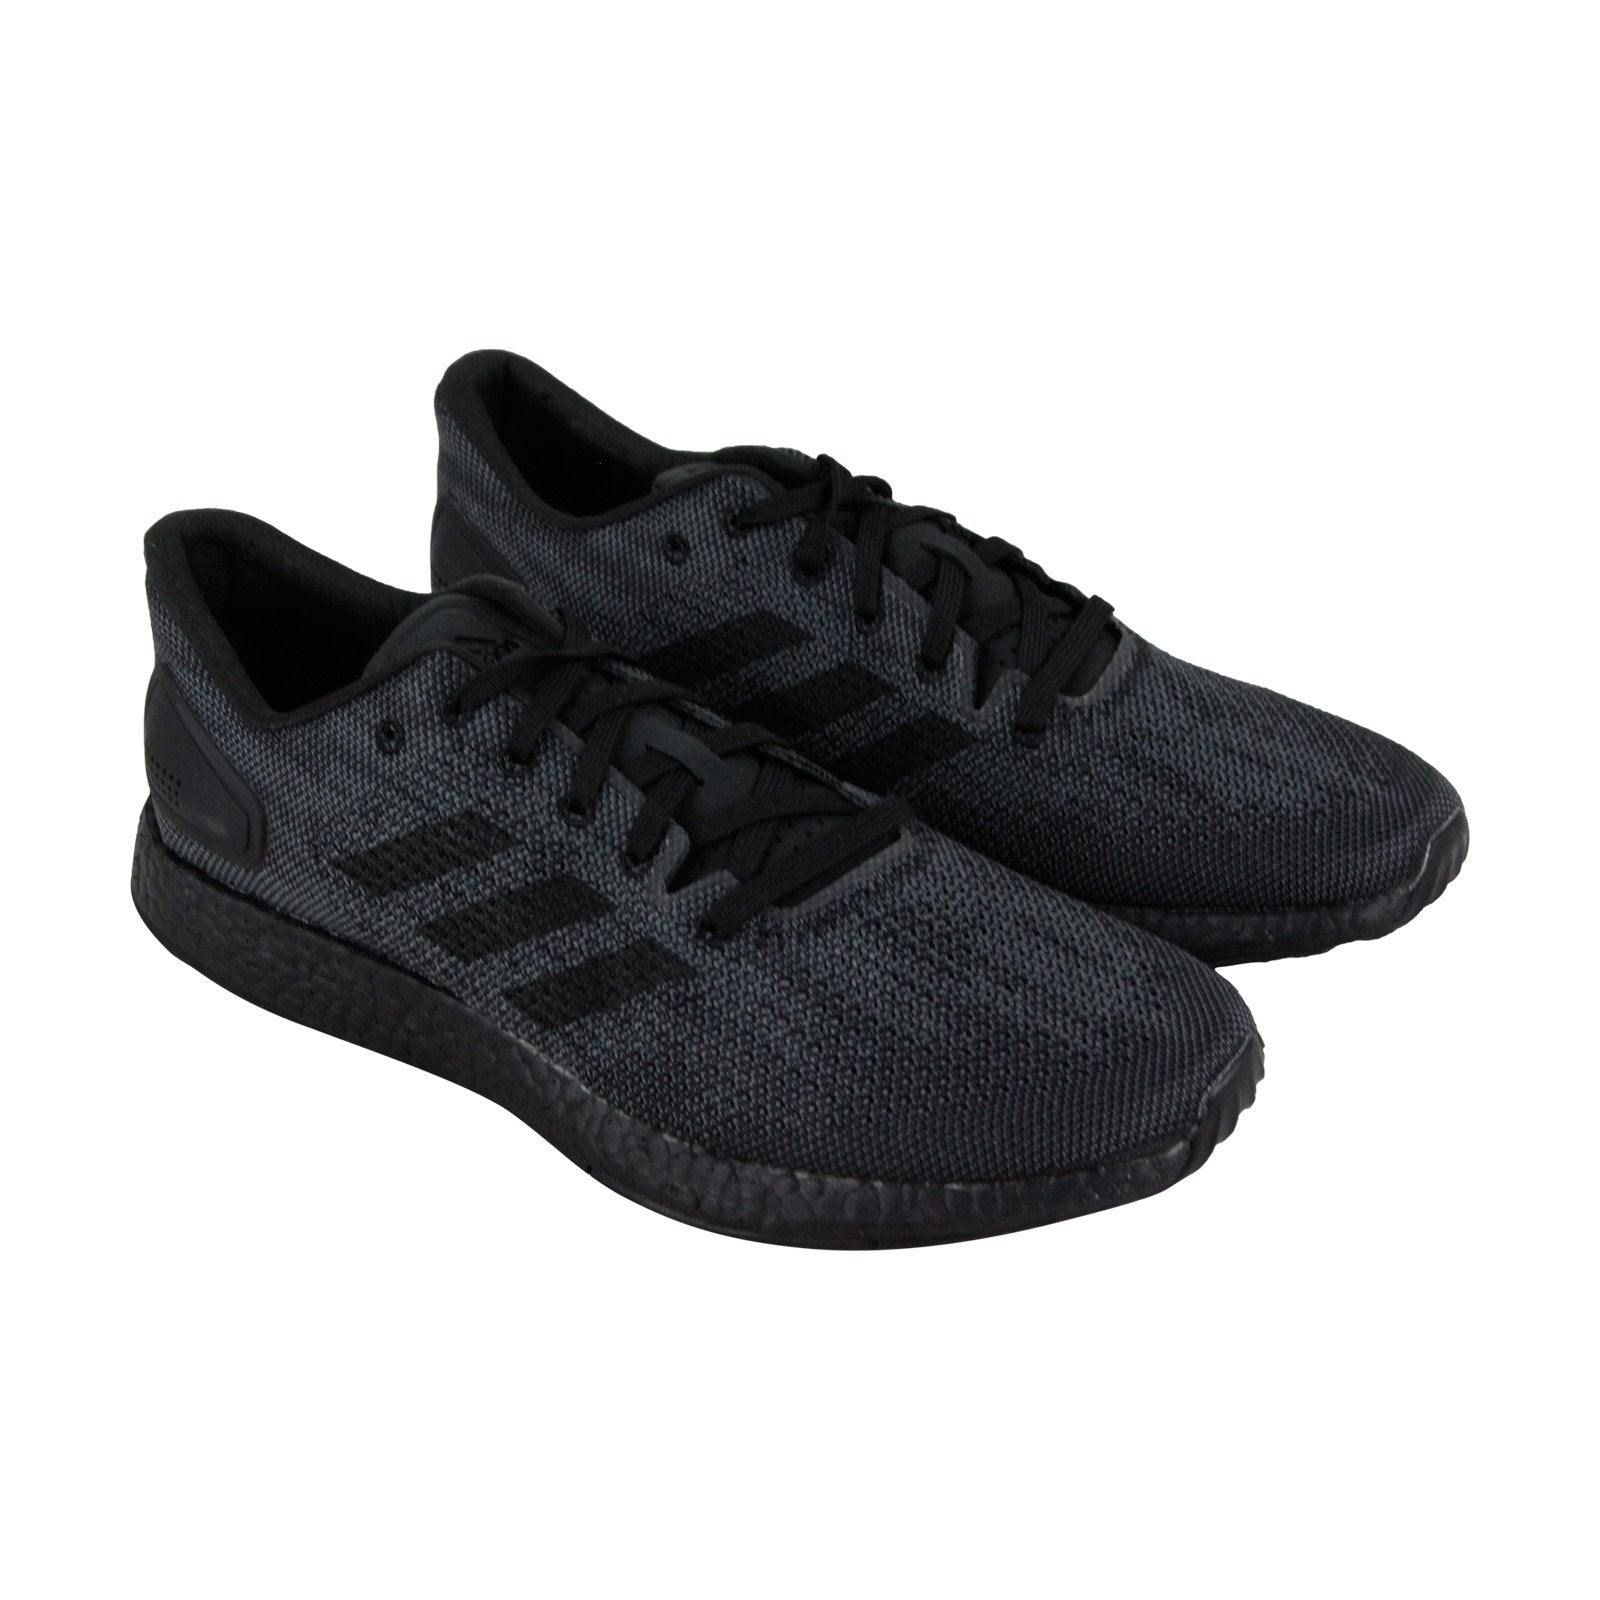 best sneakers abc00 eb367 Adidas Pureboost Dpr Ltd Mens Black Textile Low Top Lace Up Sneakers Shoes